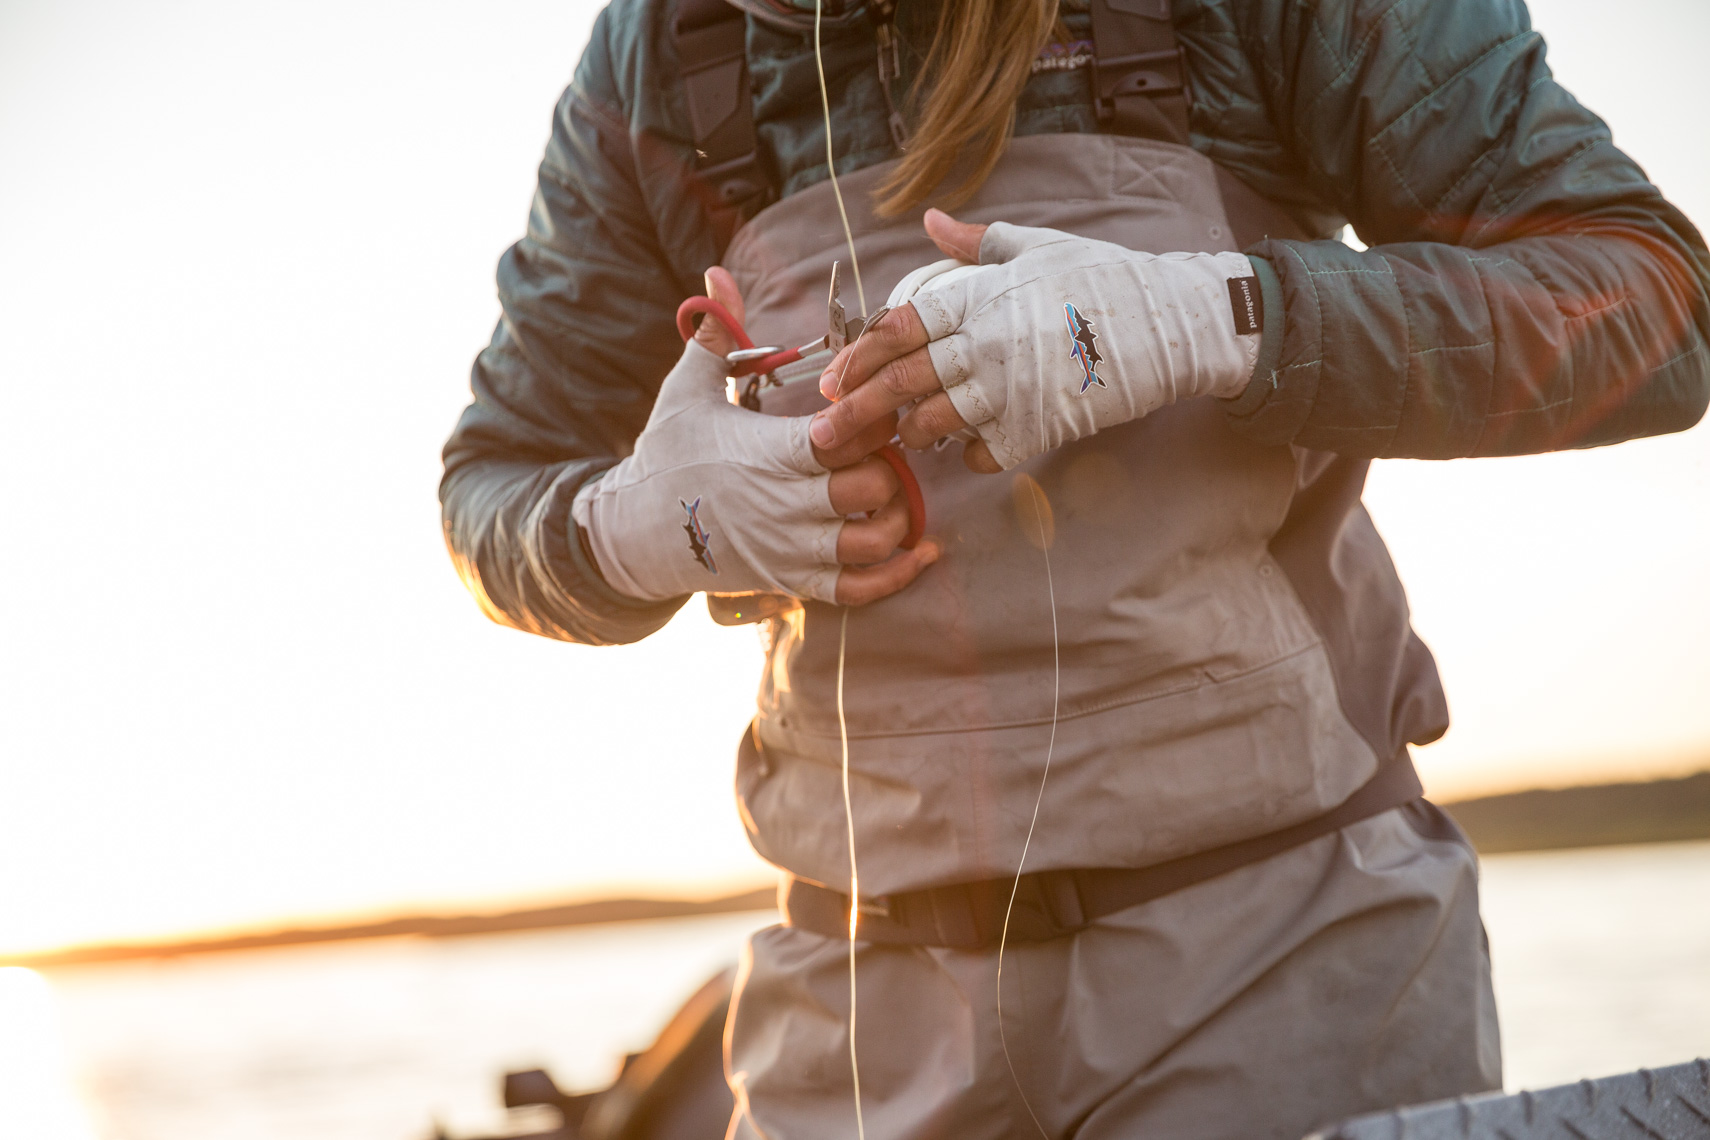 Kate Taylor, prepping her rod in Alaska fishing for salmon by outdoor photographer Rich Crowder